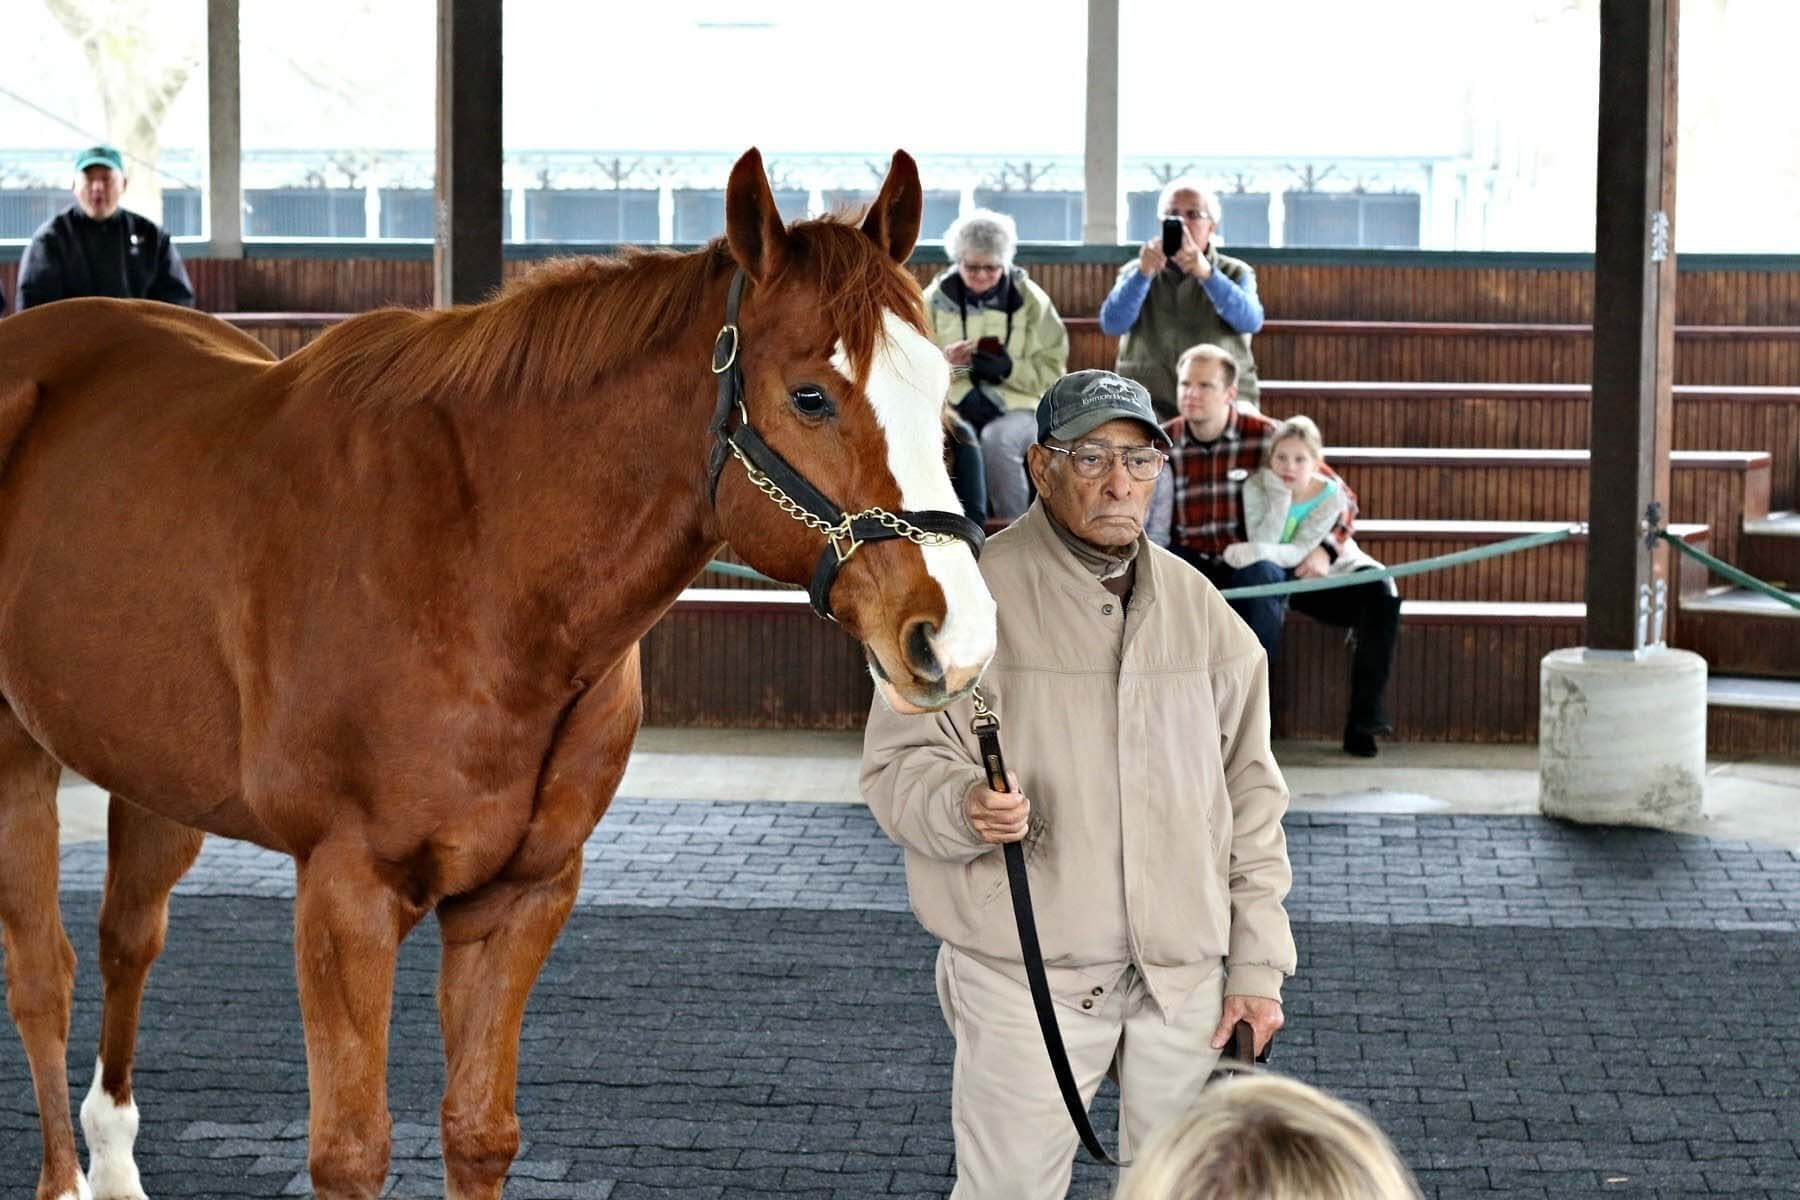 Kentucky Horse Park is located along a Kentucky scenic byway